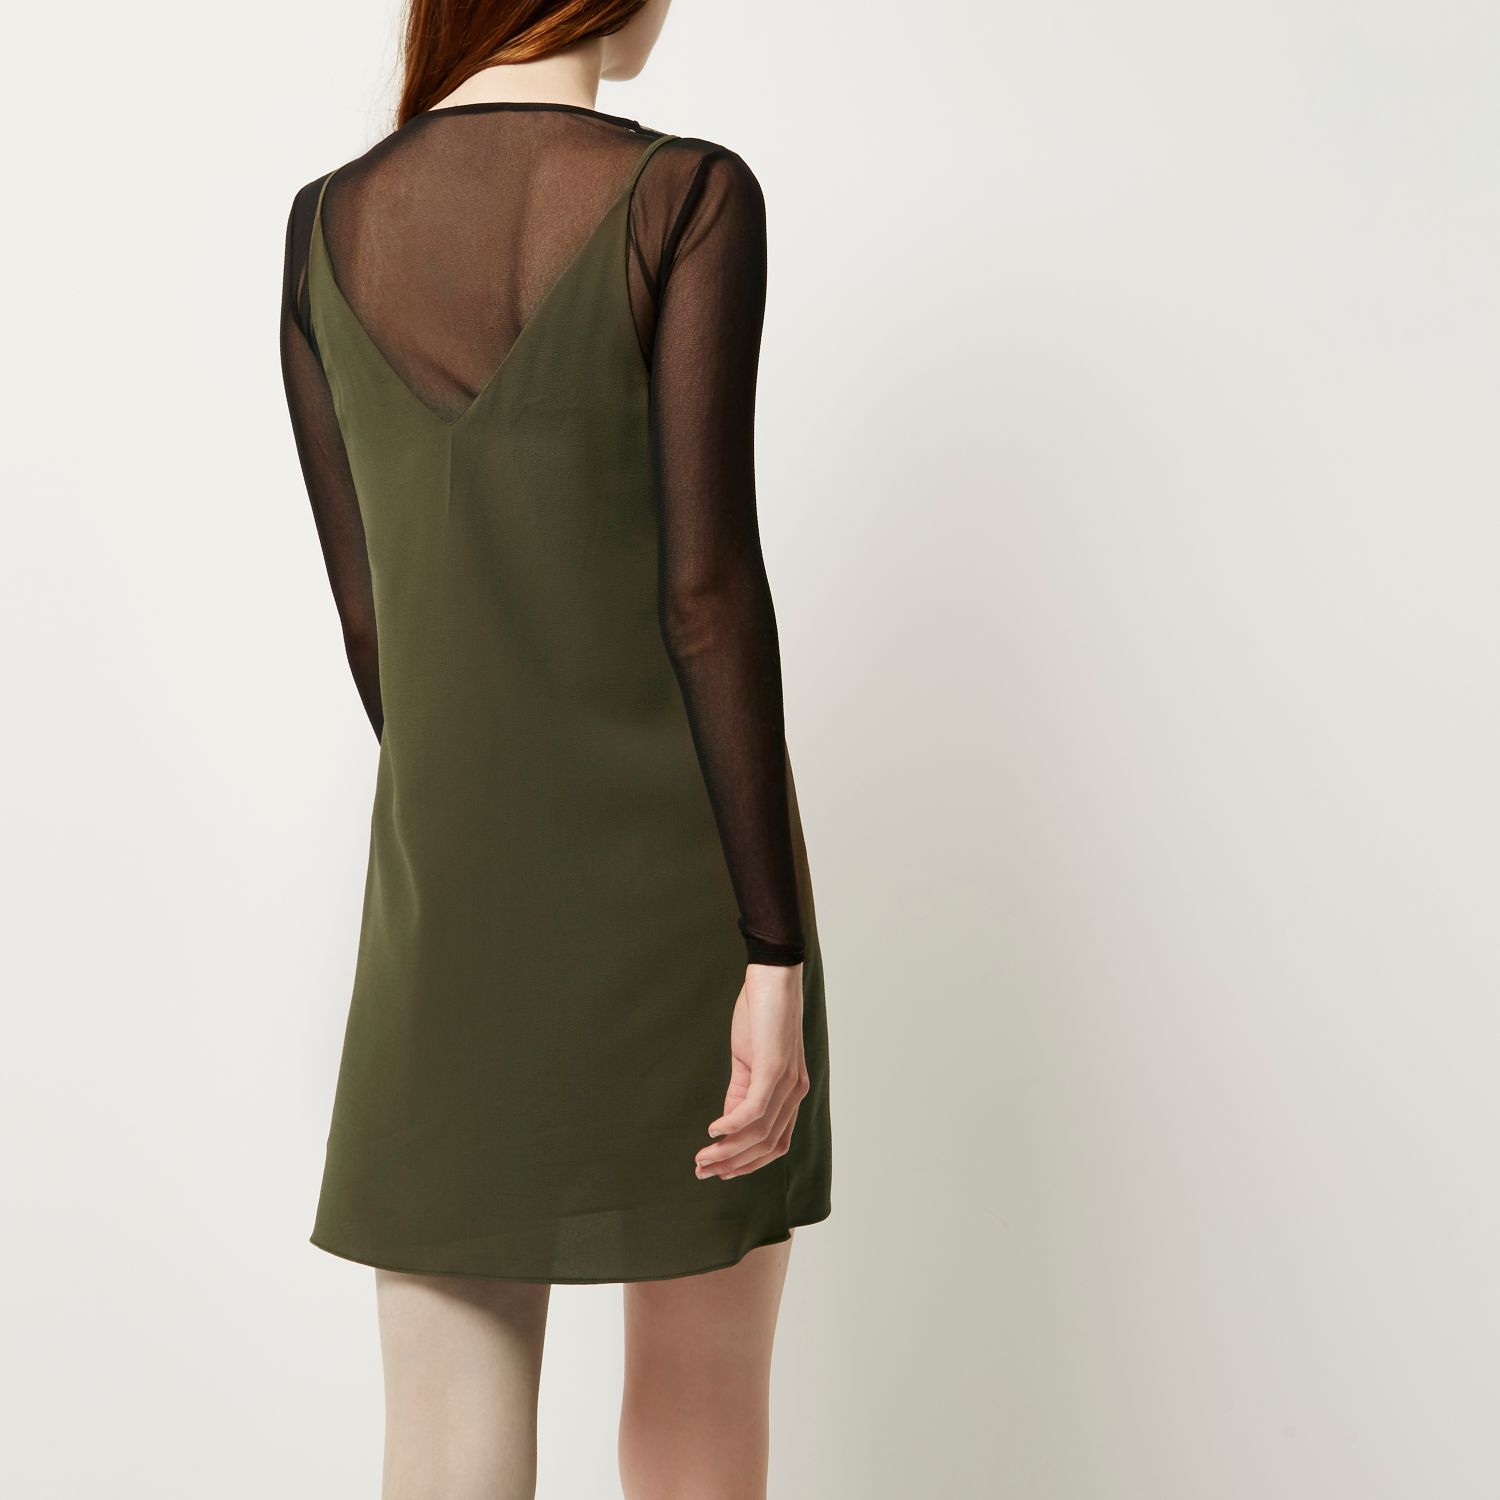 Khaki Dress River Island - Overview 2017